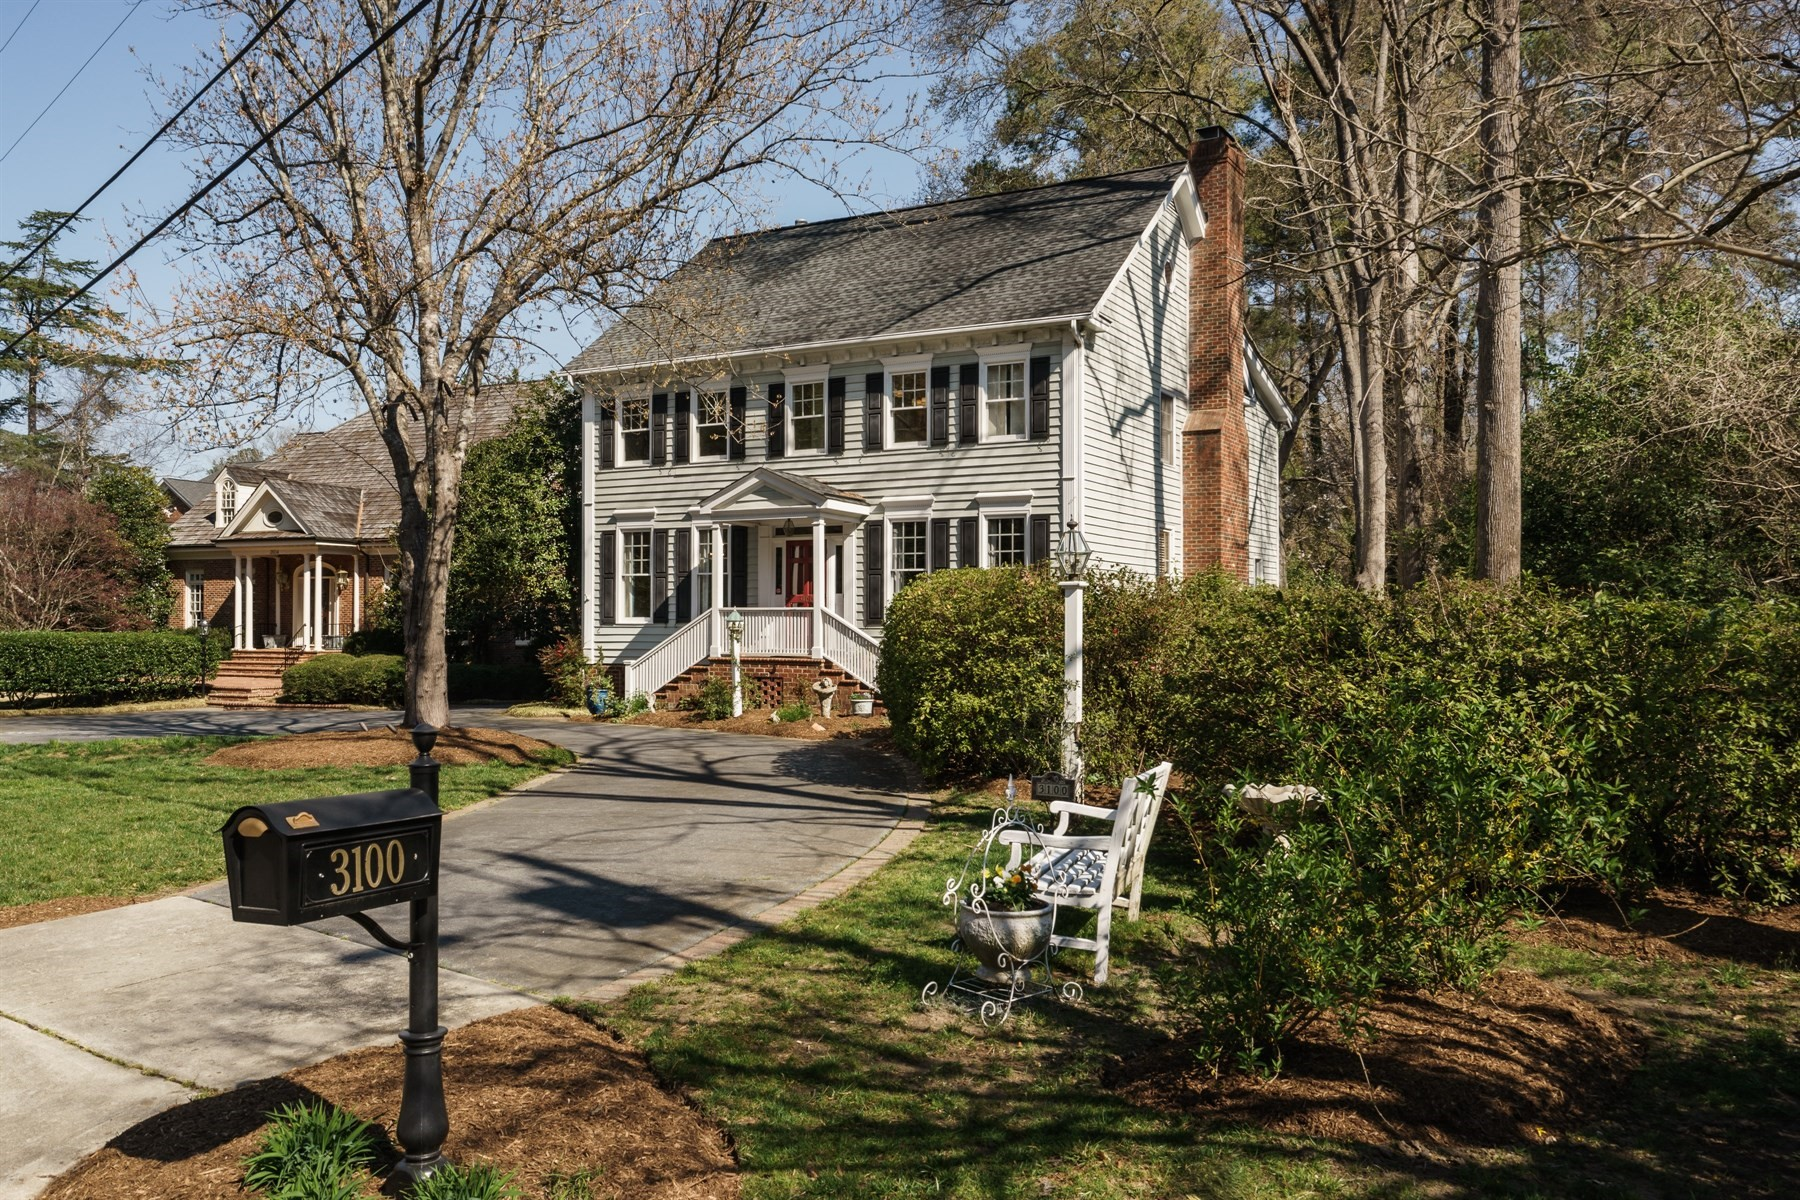 Single Family Home for Sale at Well Kept Classic Home on White Oak Road 3100 White Oak Road Raleigh, North Carolina, 27609 United StatesIn/Around: Durham, Chapel Hill, Cary